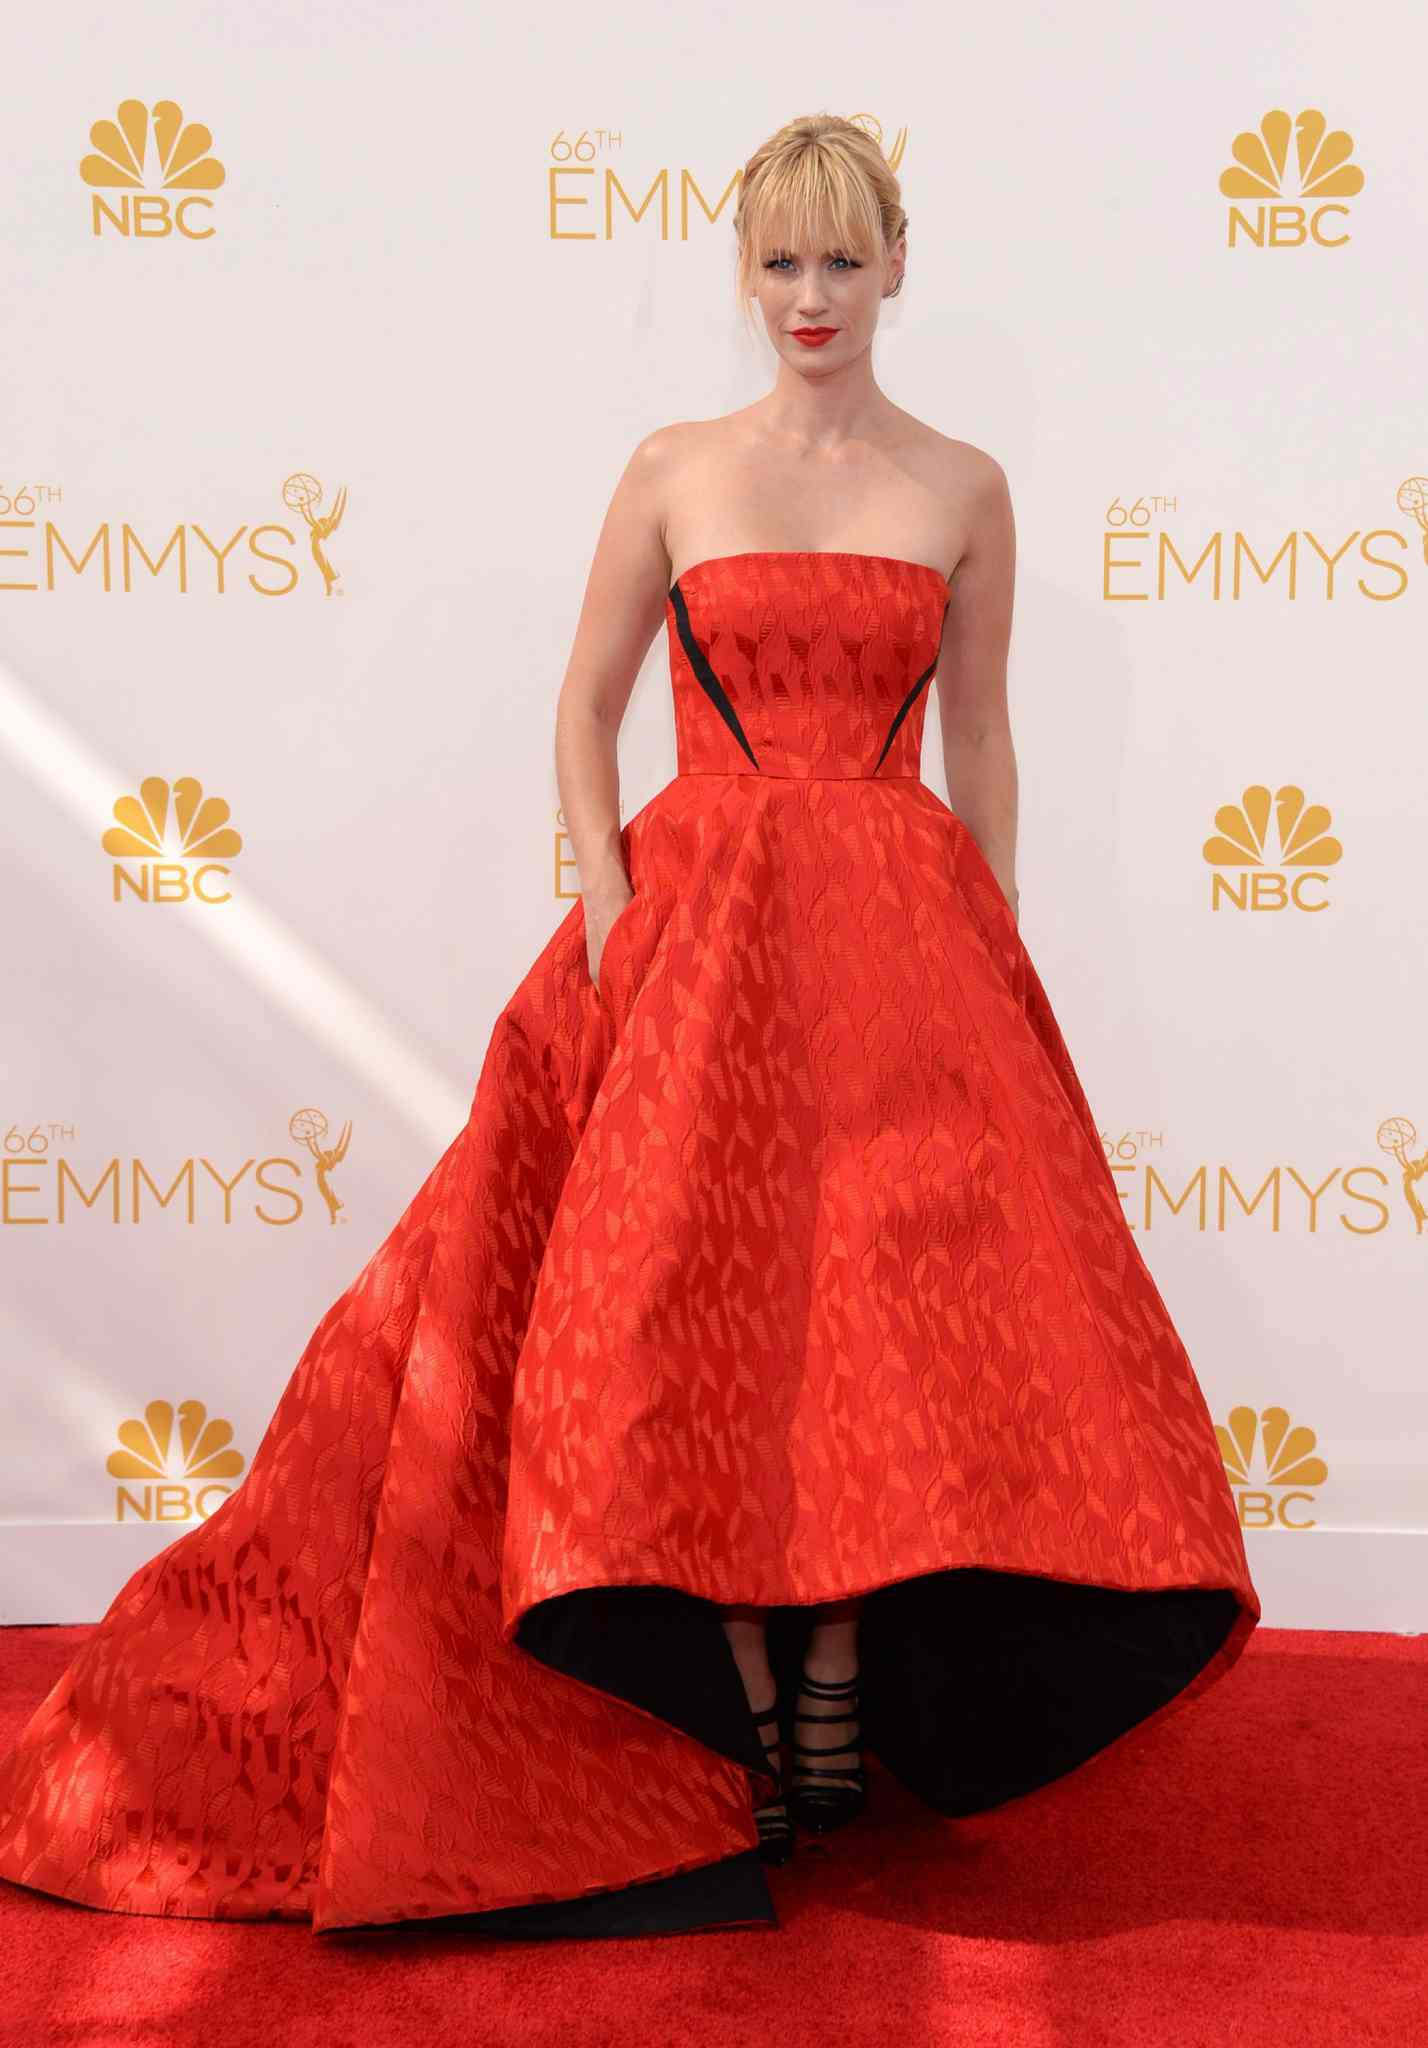 January Jones (Mad Men) arrives at the 66th Primetime Emmy Awards at the Nokia Theatre L.A. Live Monday in Los Angeles.